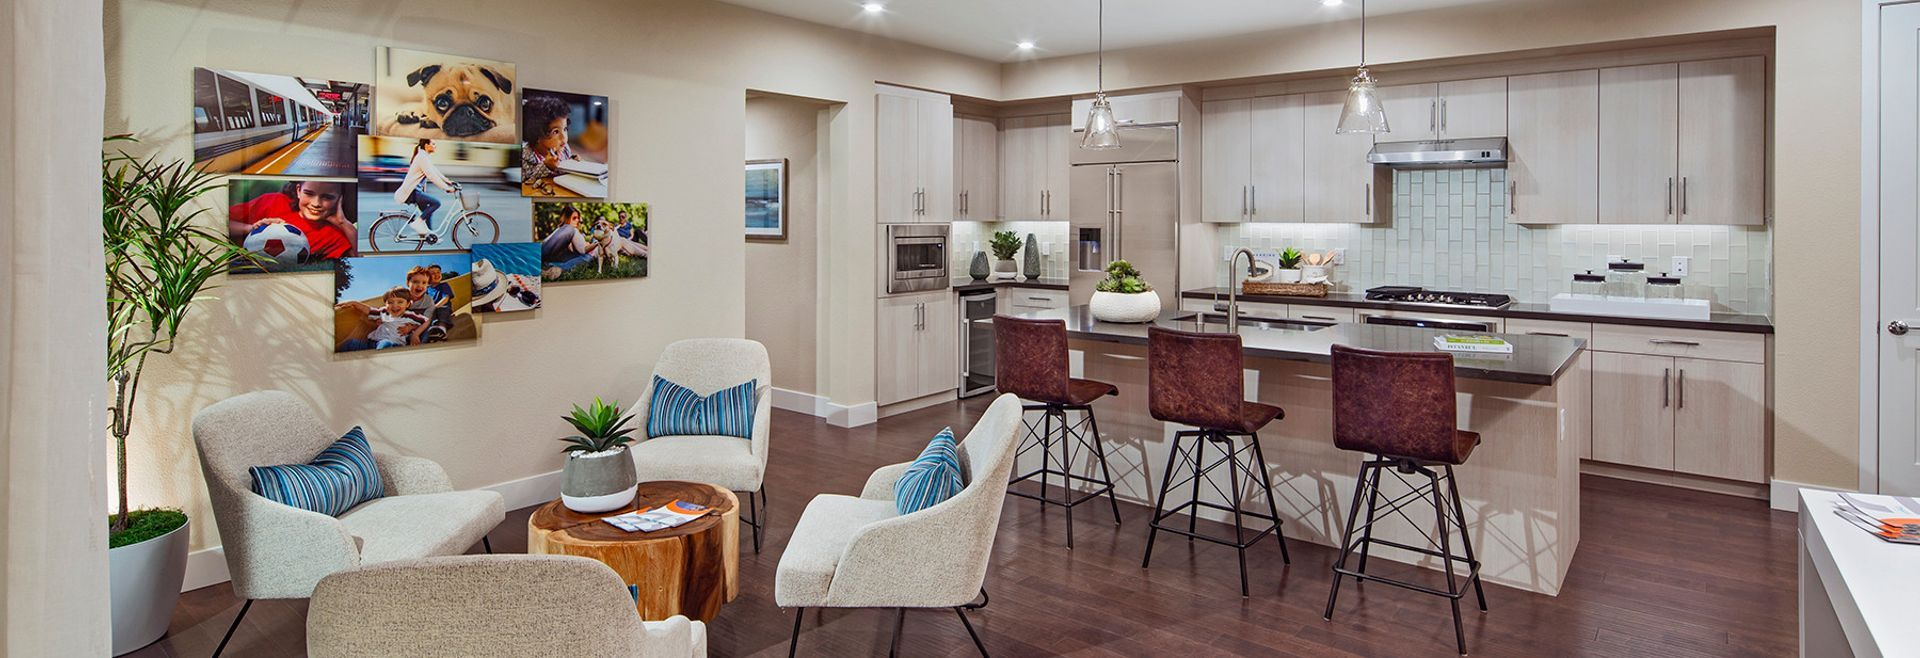 Kitchen featured in the Plan 1 By Shea Homes in Oakland-Alameda, CA